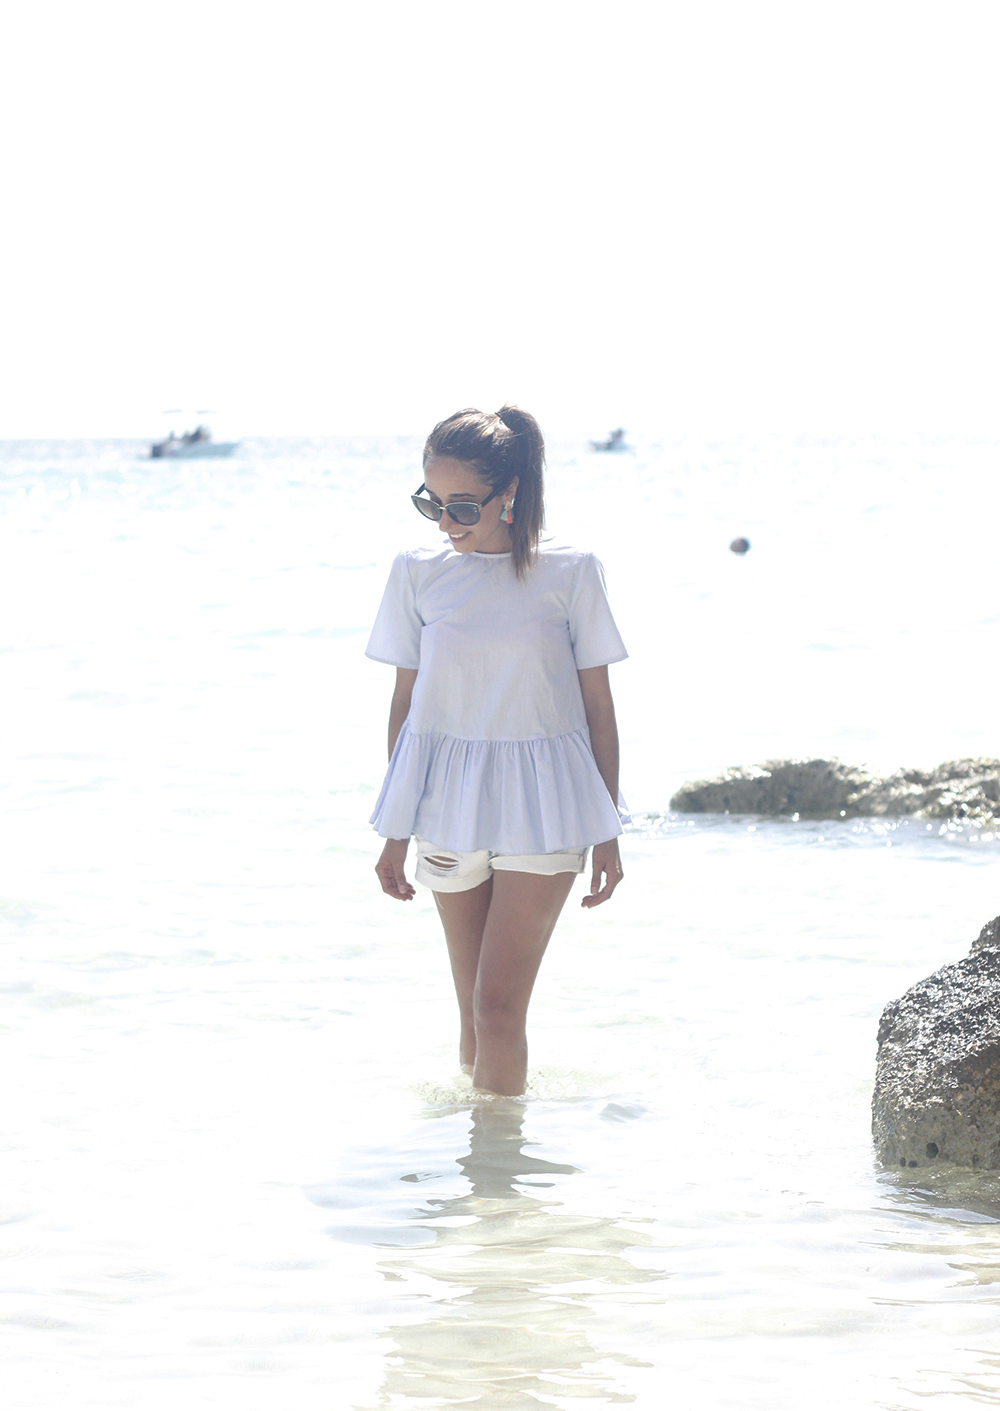 beach outfit blue blouse with bows shorts hat sunnies summer fashion style06